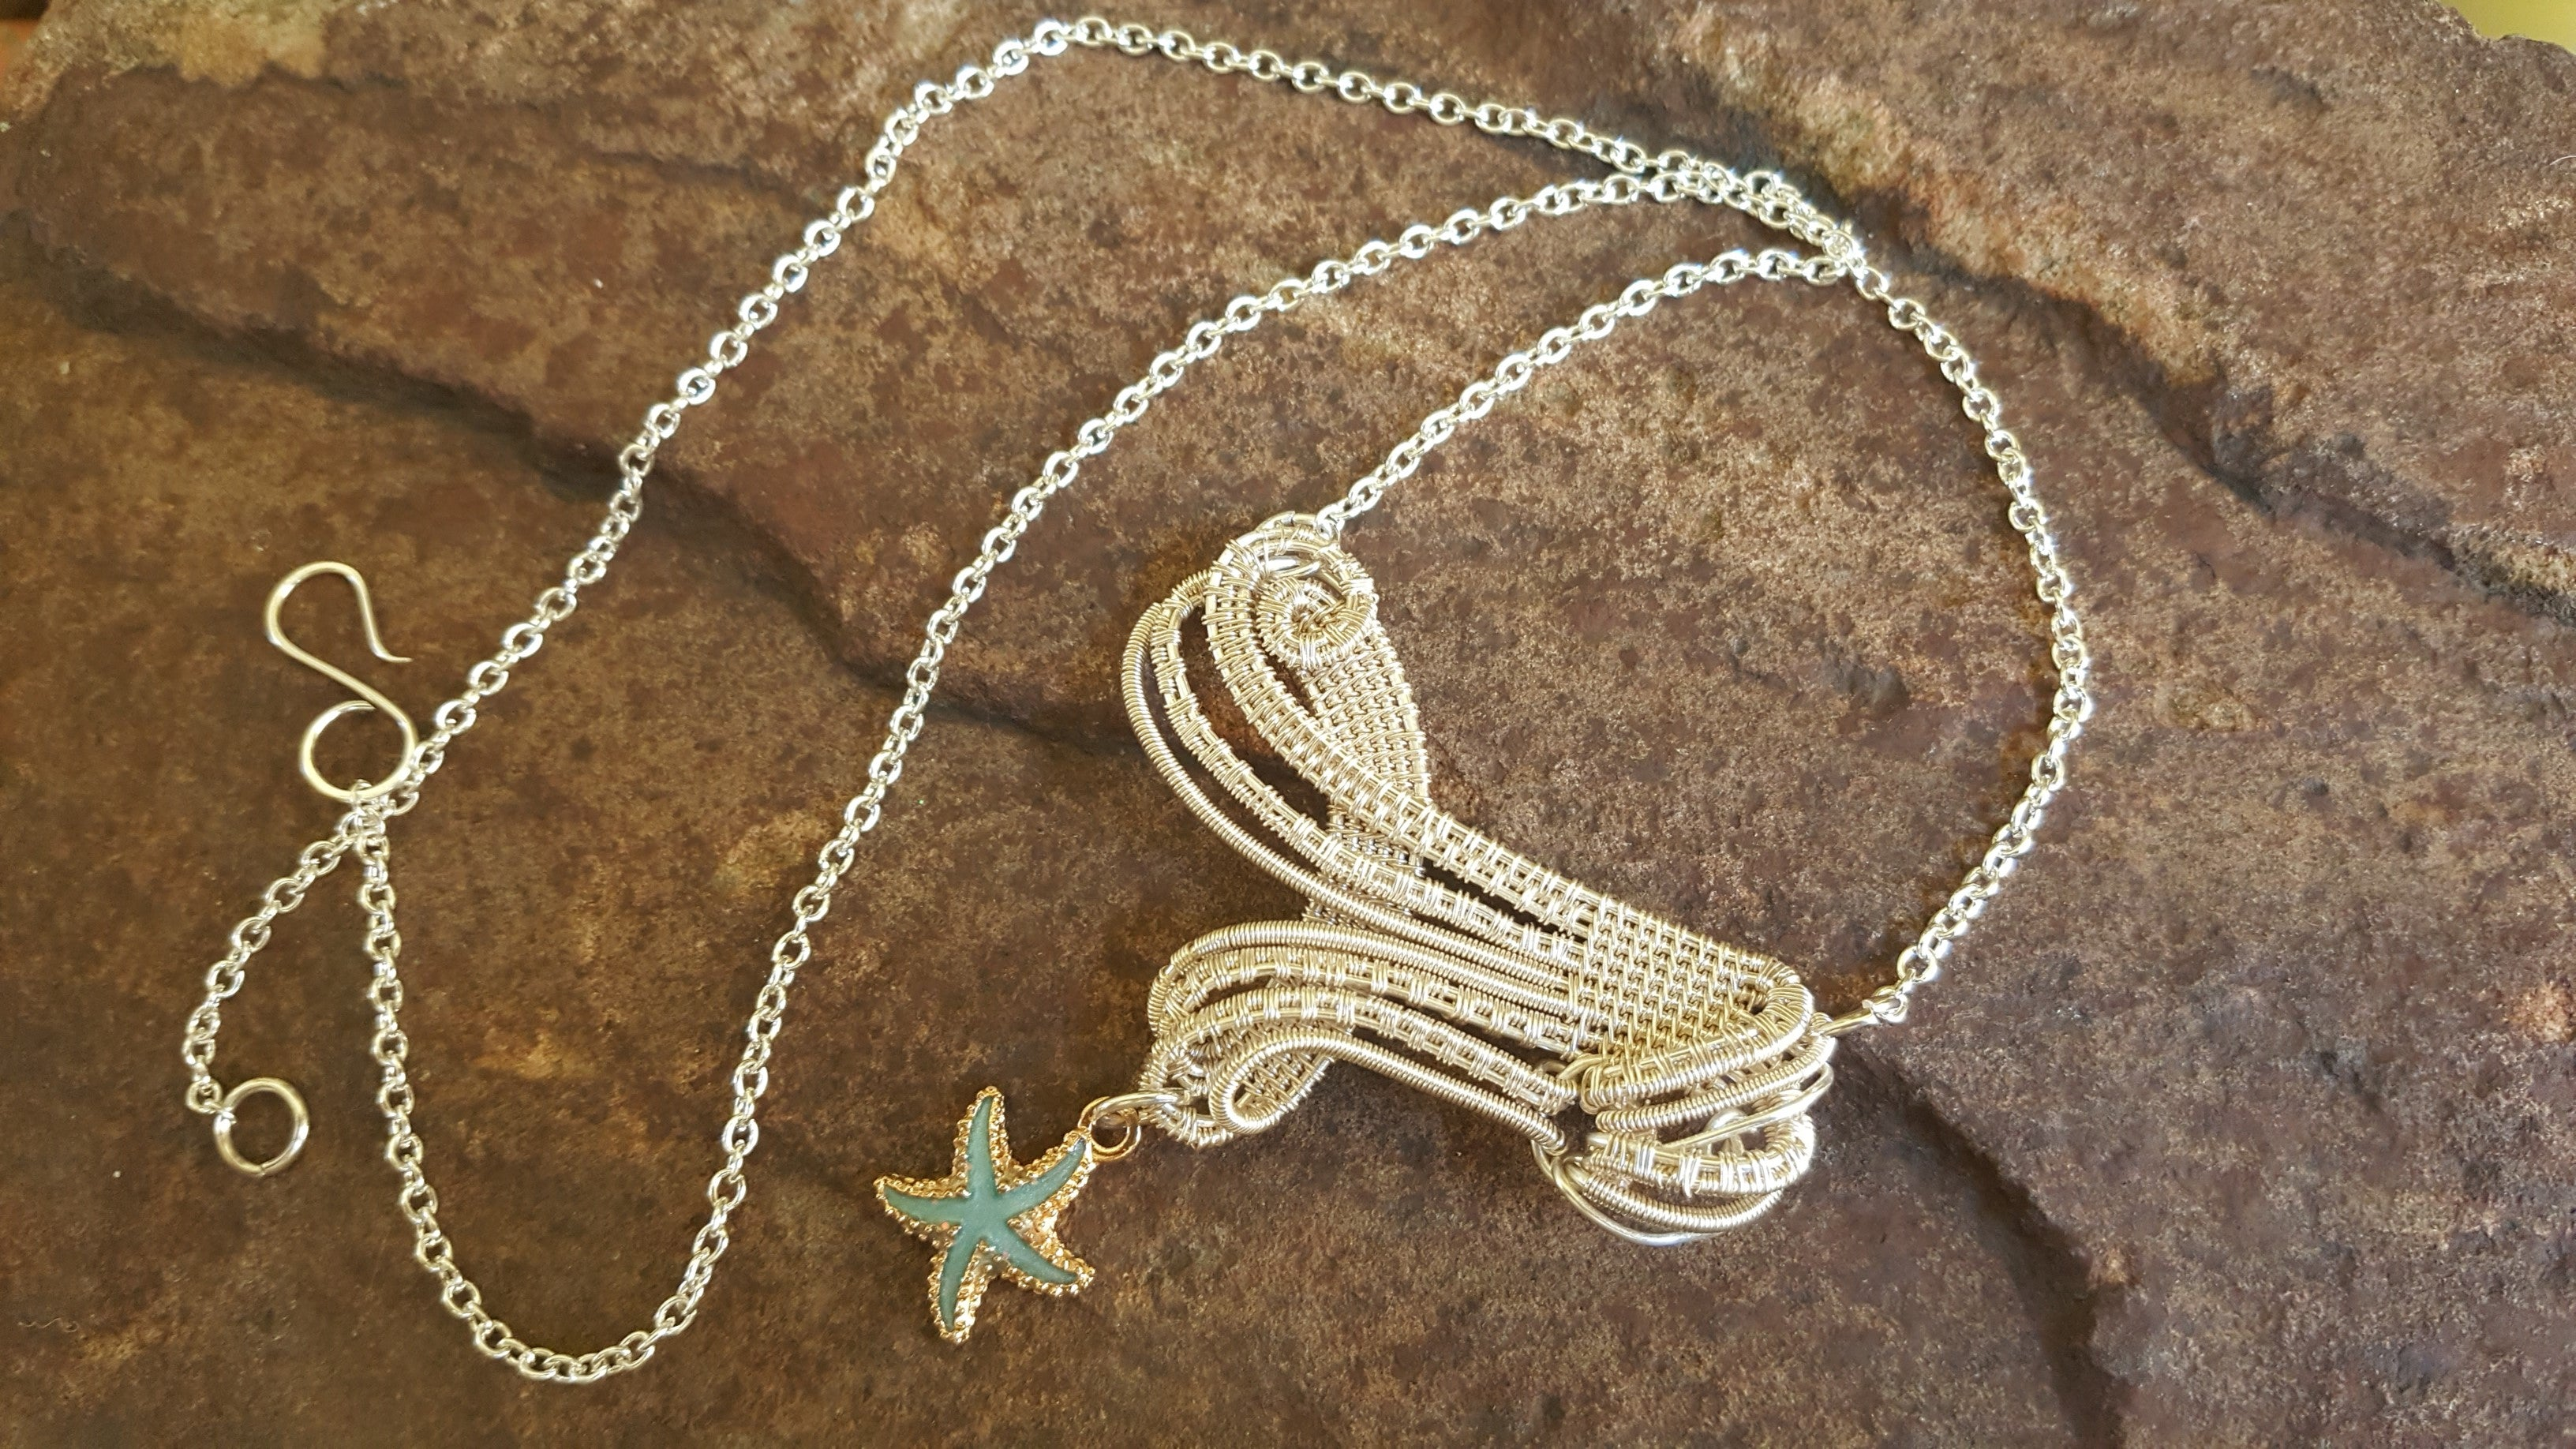 A wonderfully woven silver Stream and Tide necklace